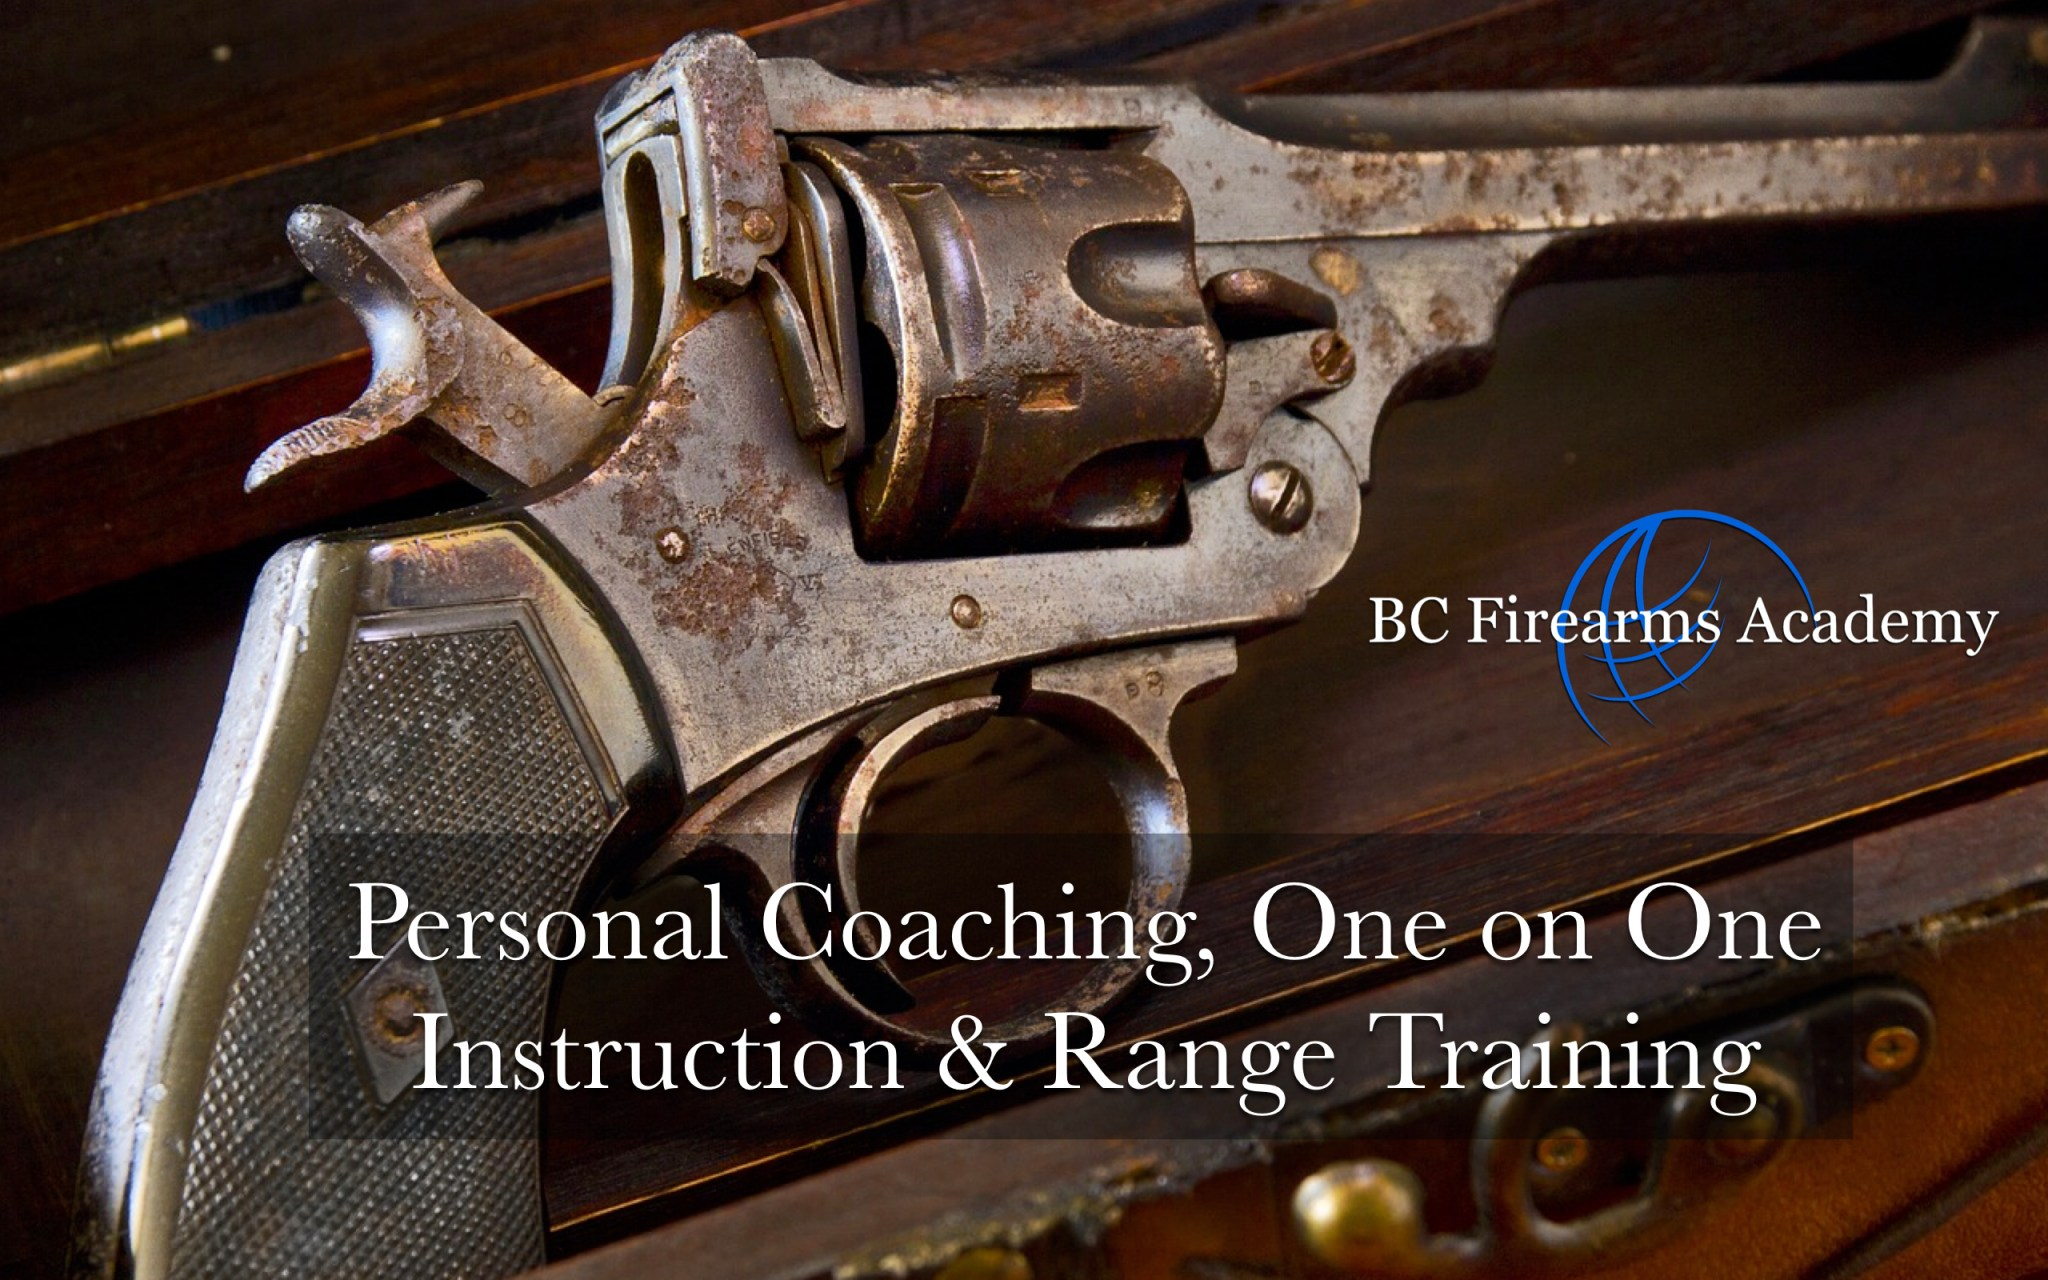 Personal Coaching, One on One Instruction & Range Training